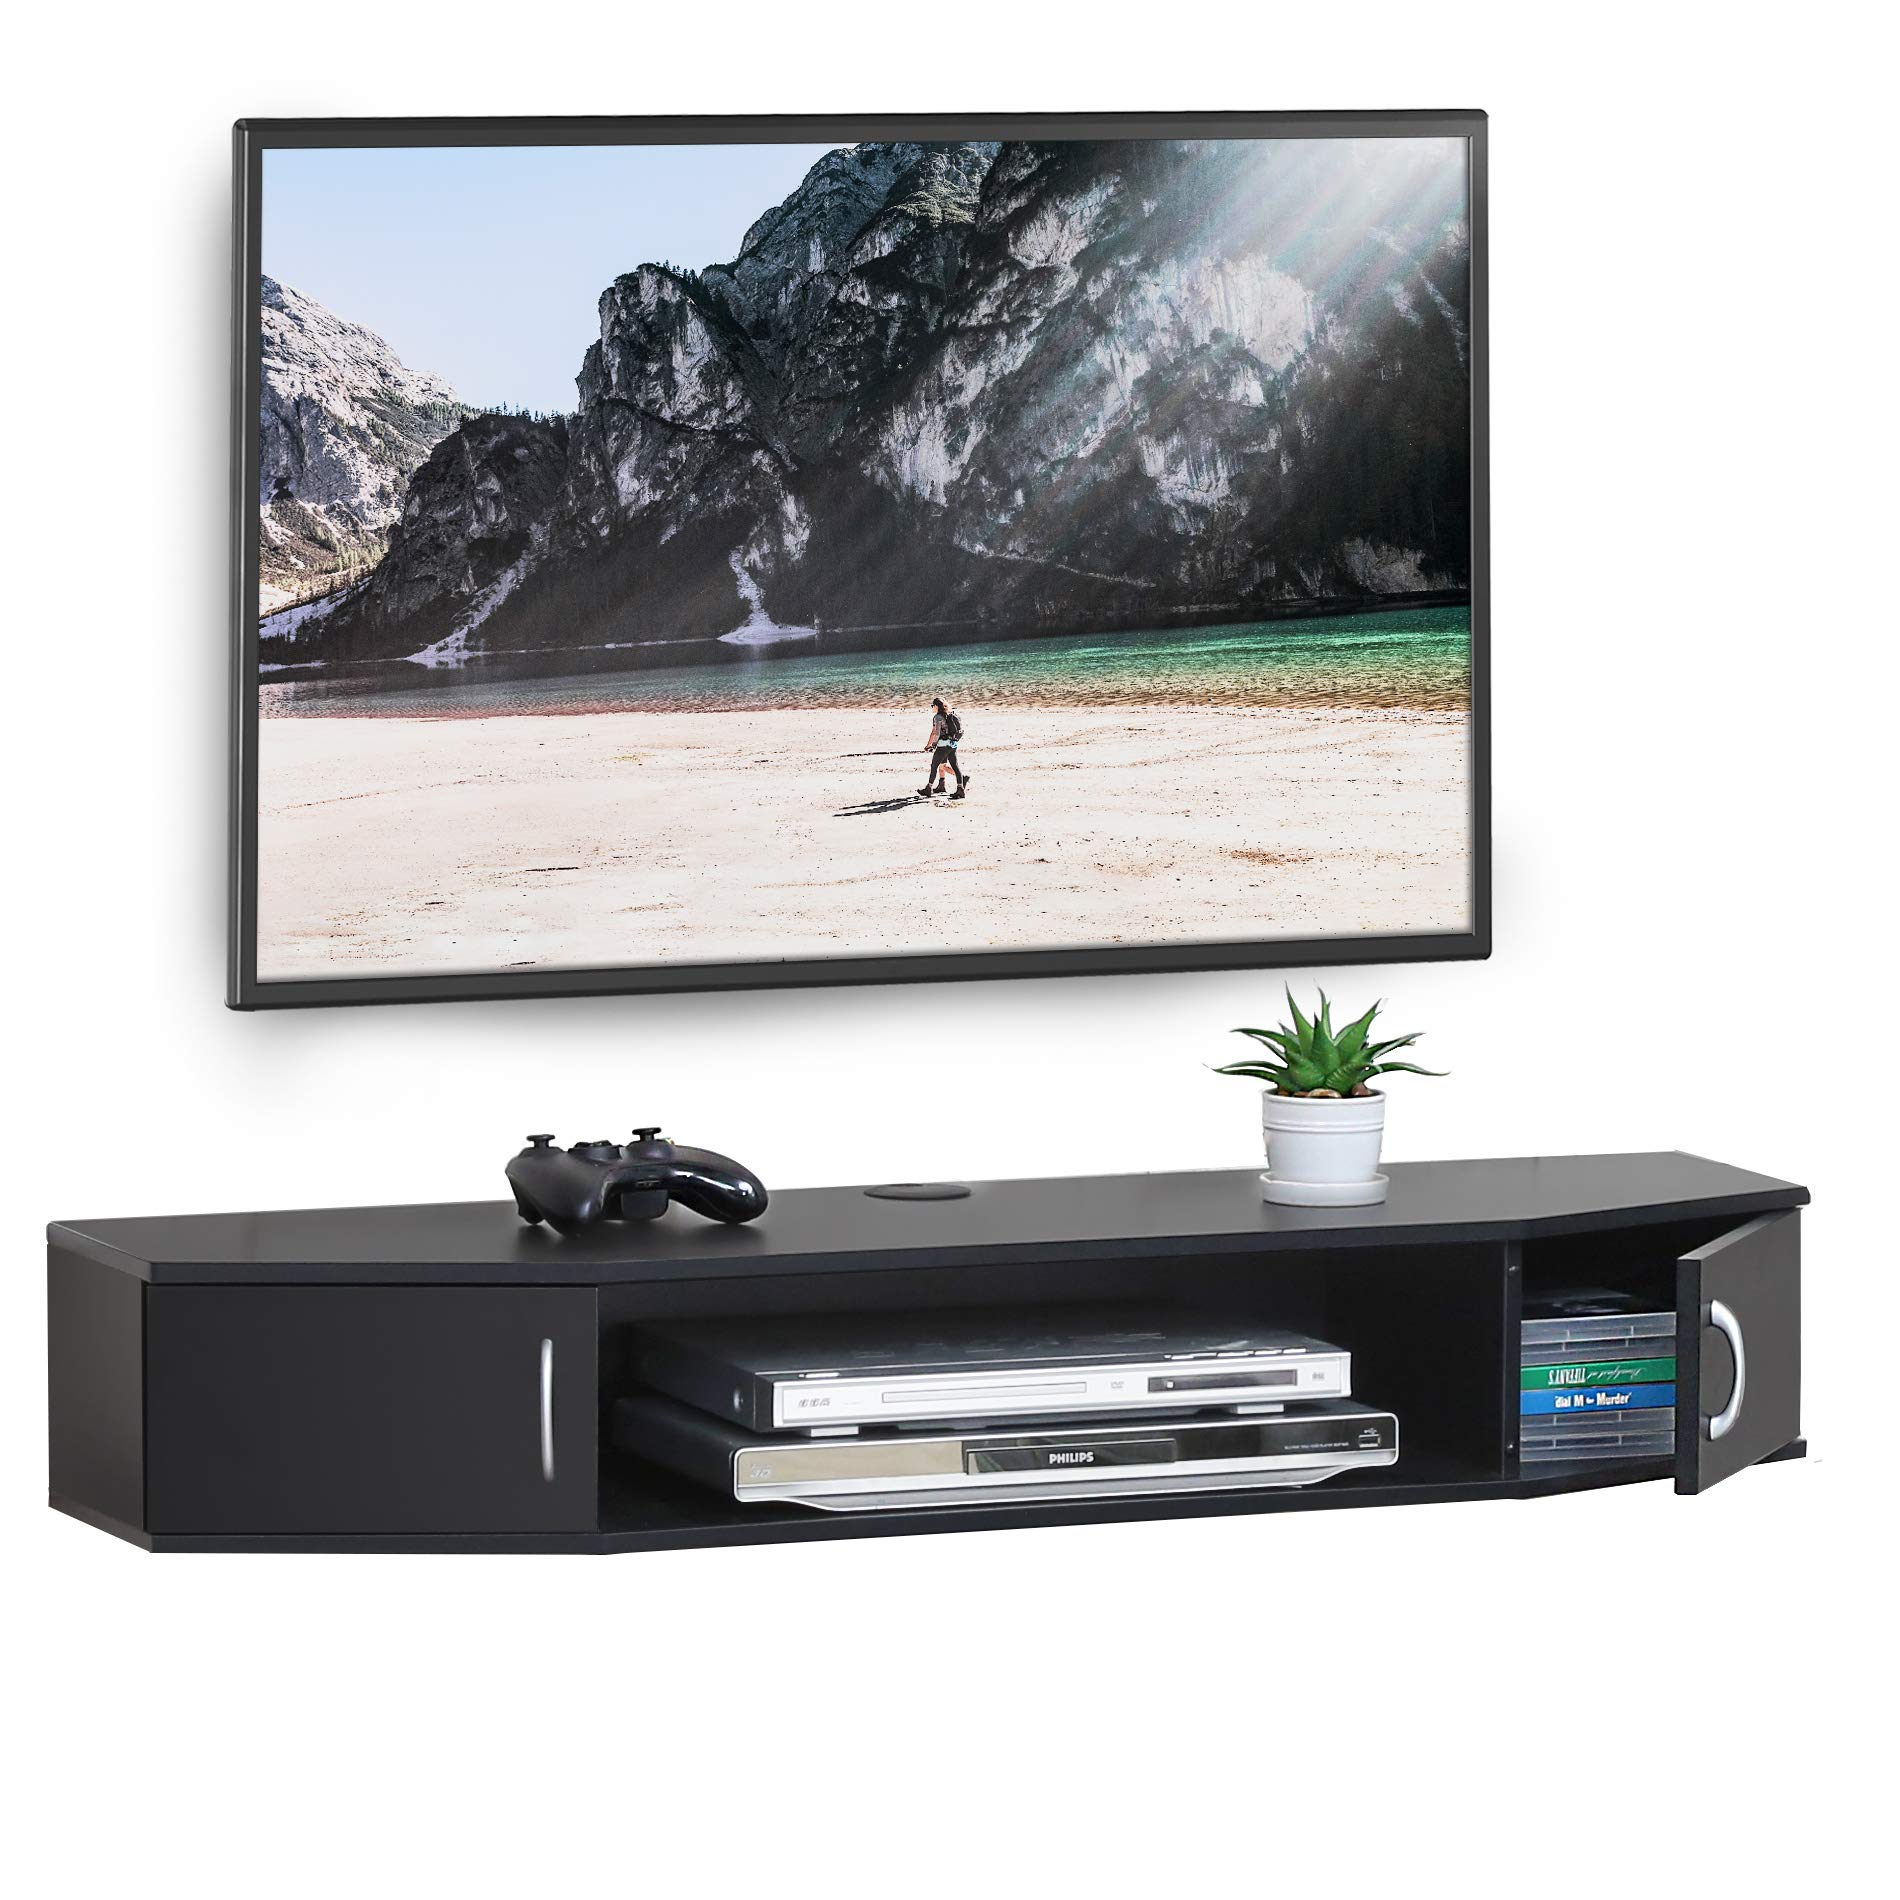 FITUEYES Wall Mounted TV Media Console Floating Desk Storage Hutch for Home and Office DS211001WB by FITUEYES